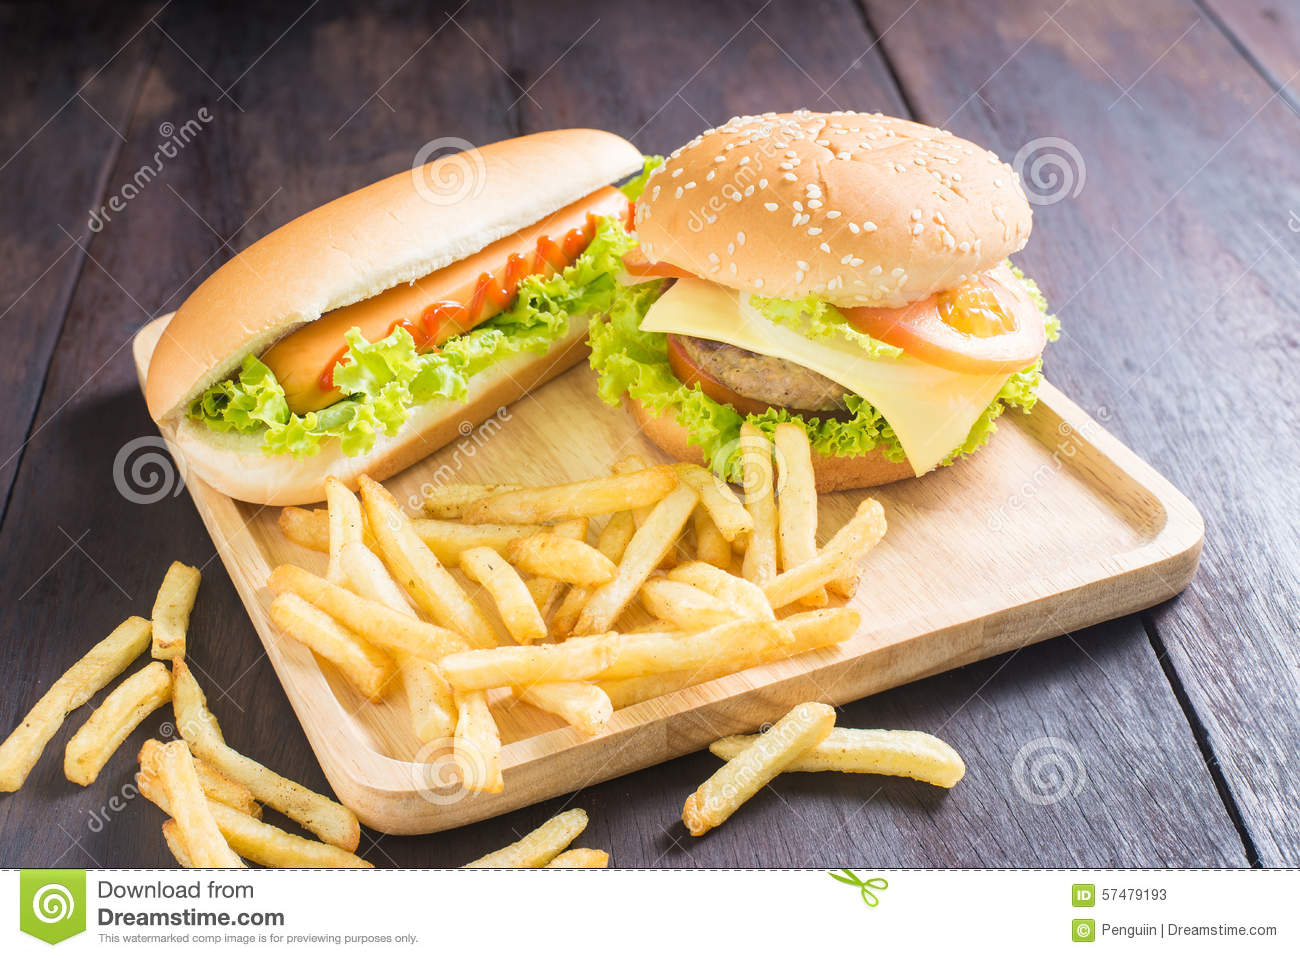 hamburger hot dog pommes frites sur le bois photo stock image 57479193. Black Bedroom Furniture Sets. Home Design Ideas